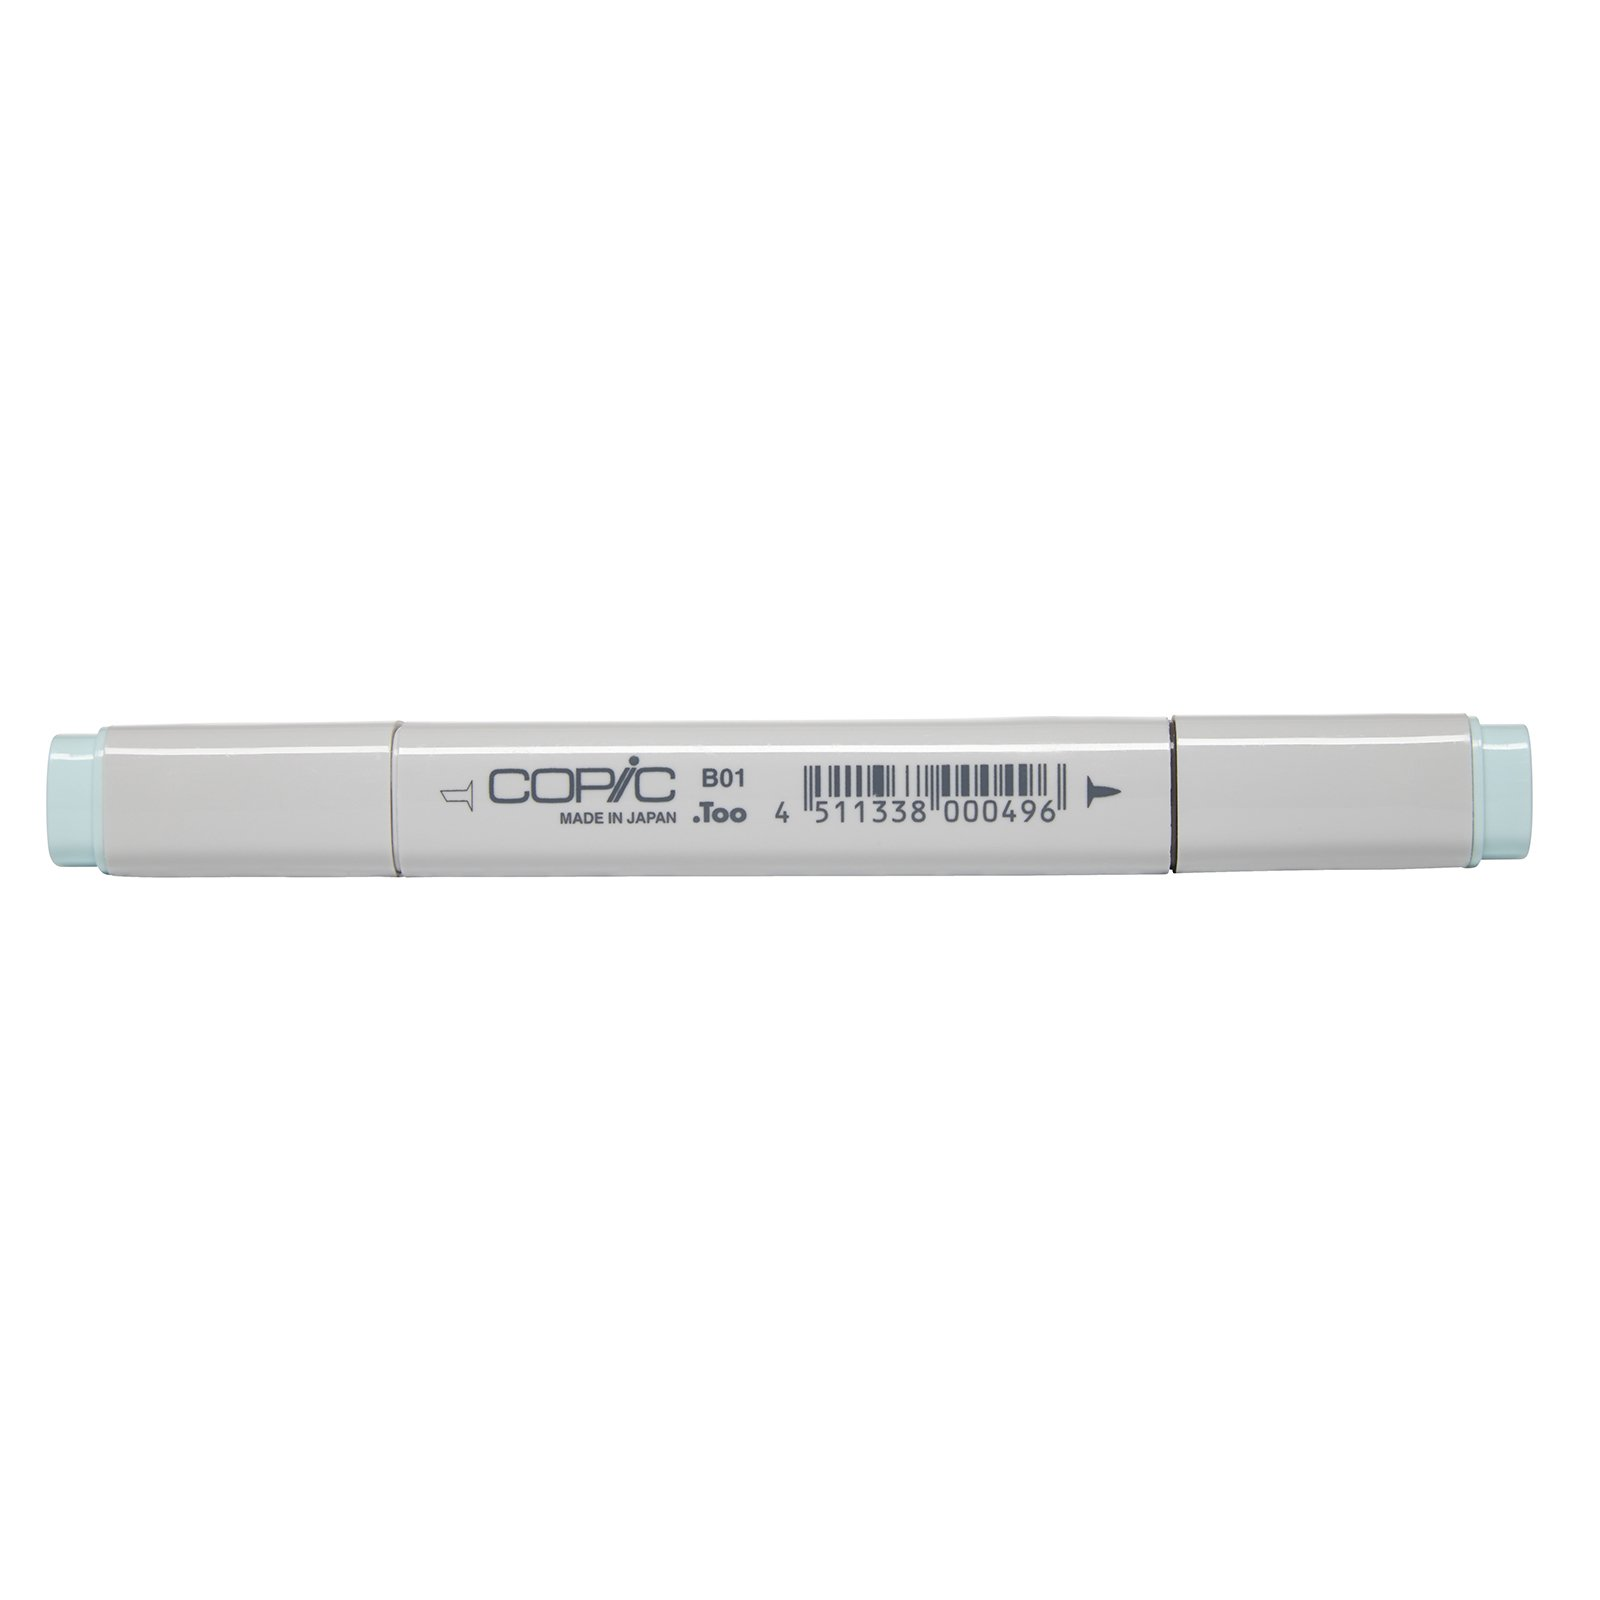 Copic Marker with Replaceable Nib, B01-Copic, Mint Blue